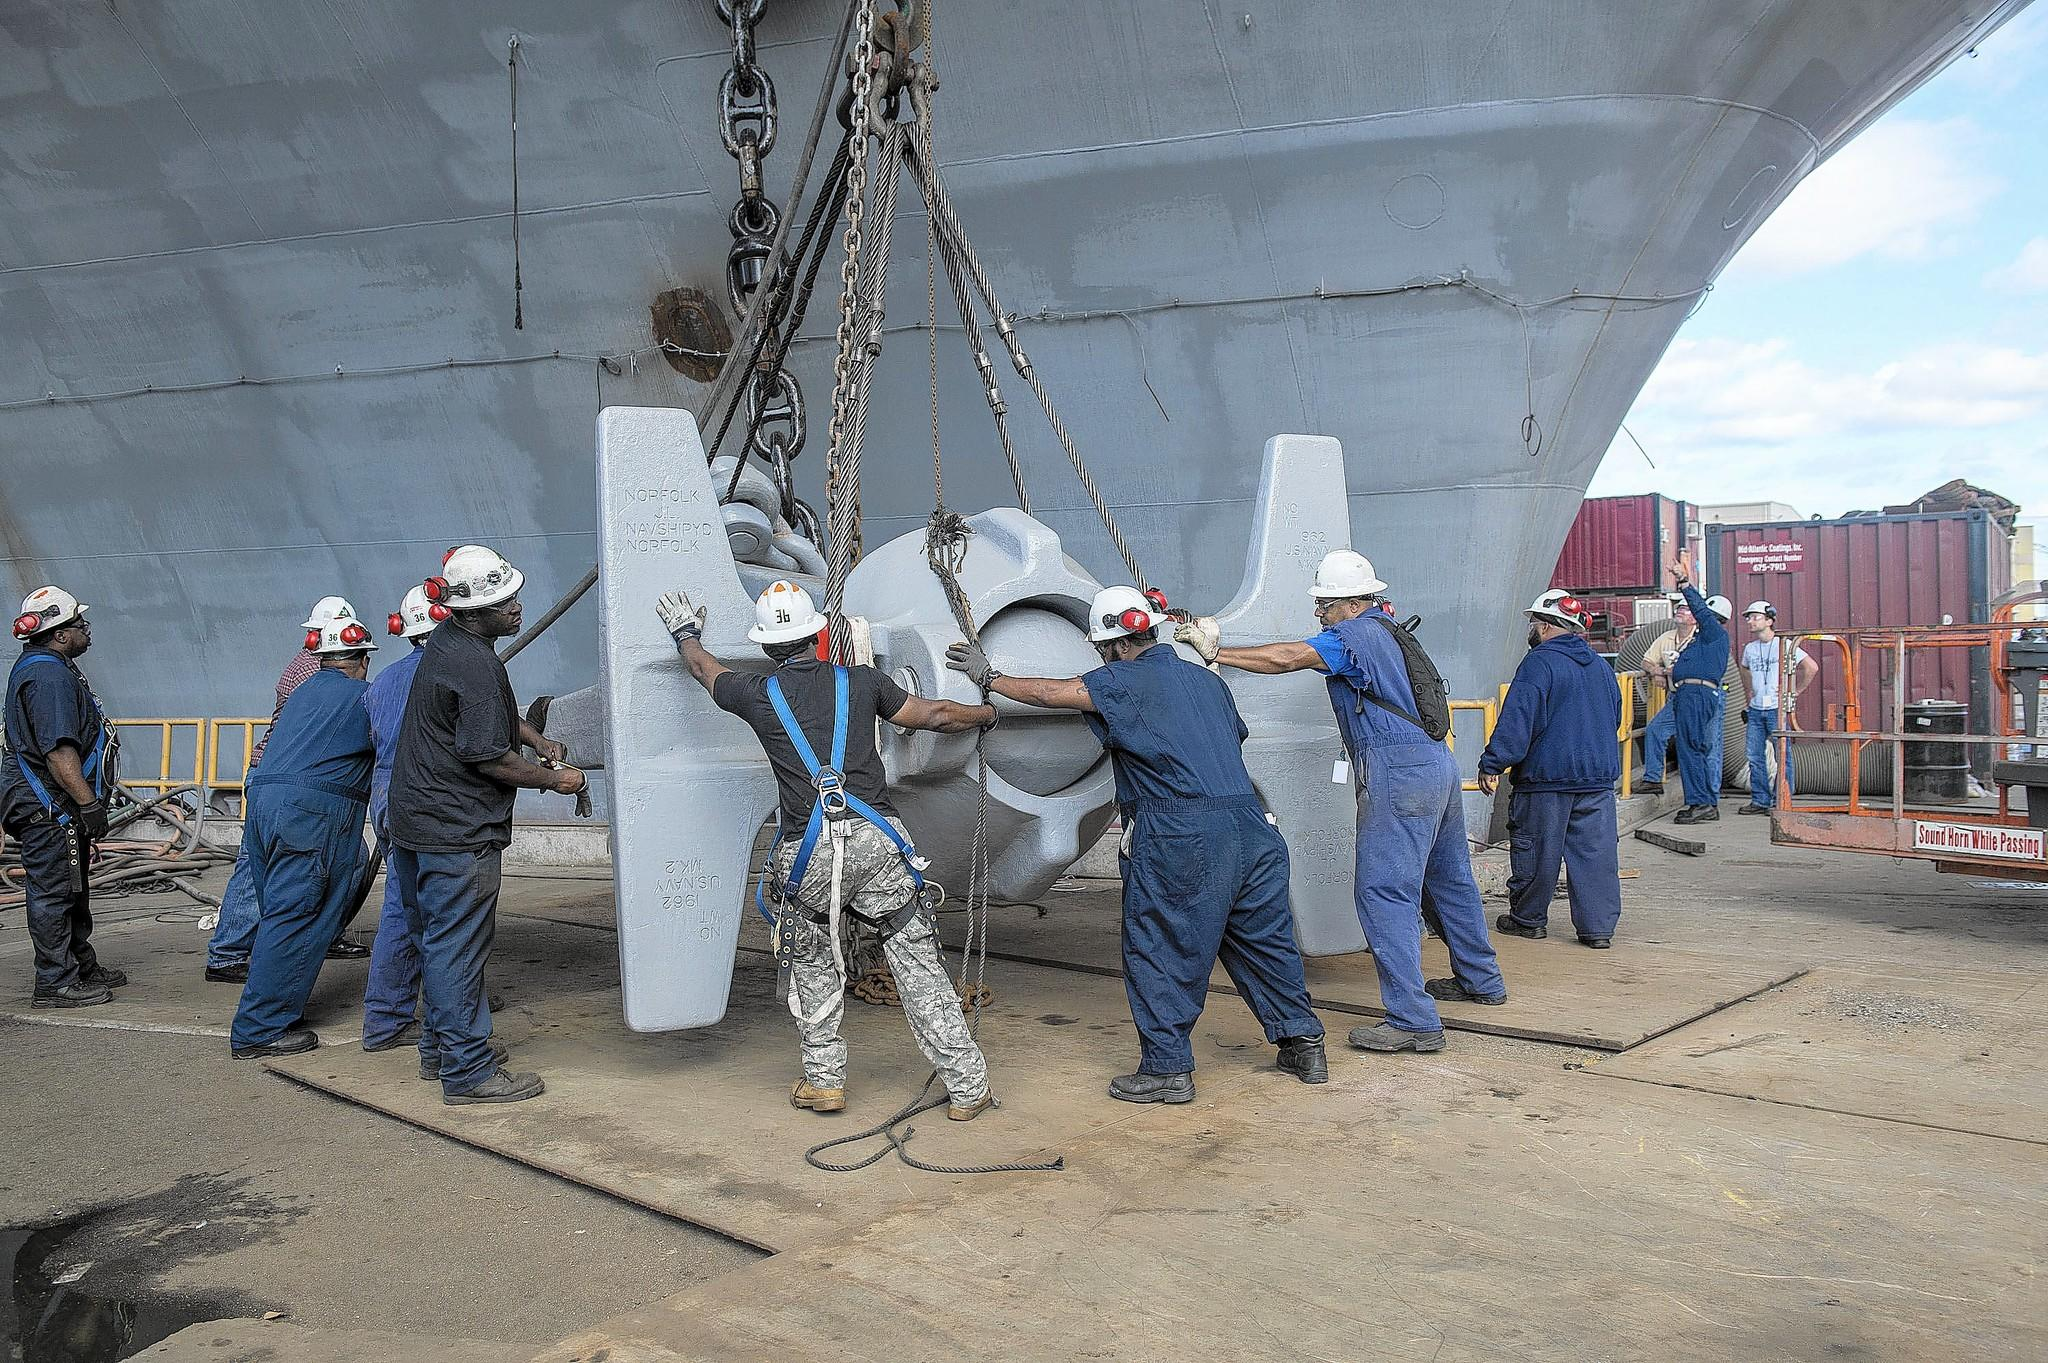 Workers at Newport News Shipbuilding recently installed an anchor on the USS Abraham Lincoln that came used, but in good condition. It was taken from the former USS Enterprise, the world's first nuclear-powered carrier, now inactivated and docked a few hundred yards away.